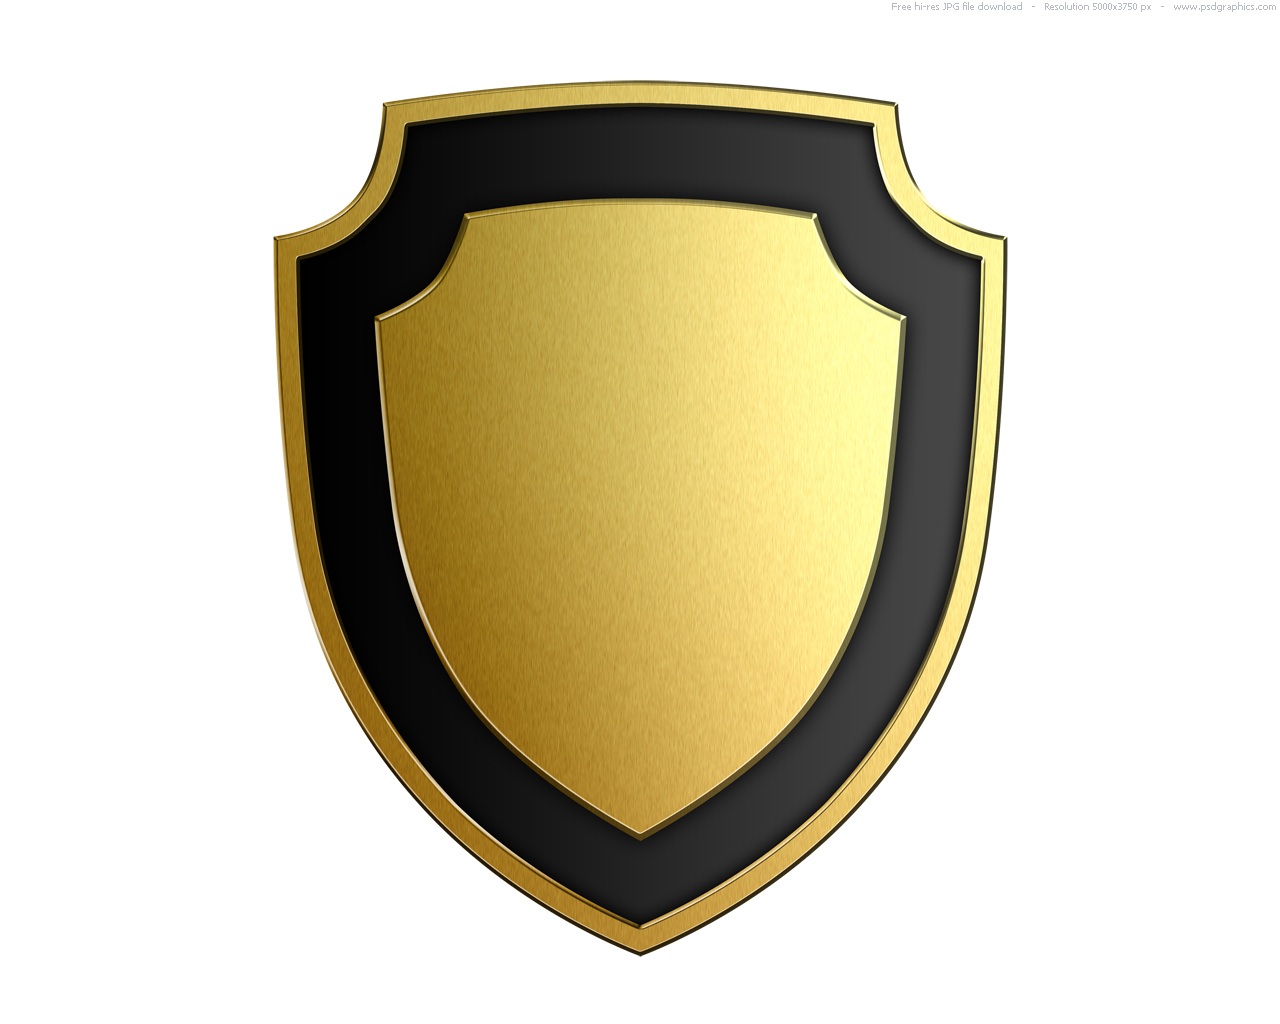 Shiny Gold Shield   Free Images At Clker Com   Vector Clip Art Online